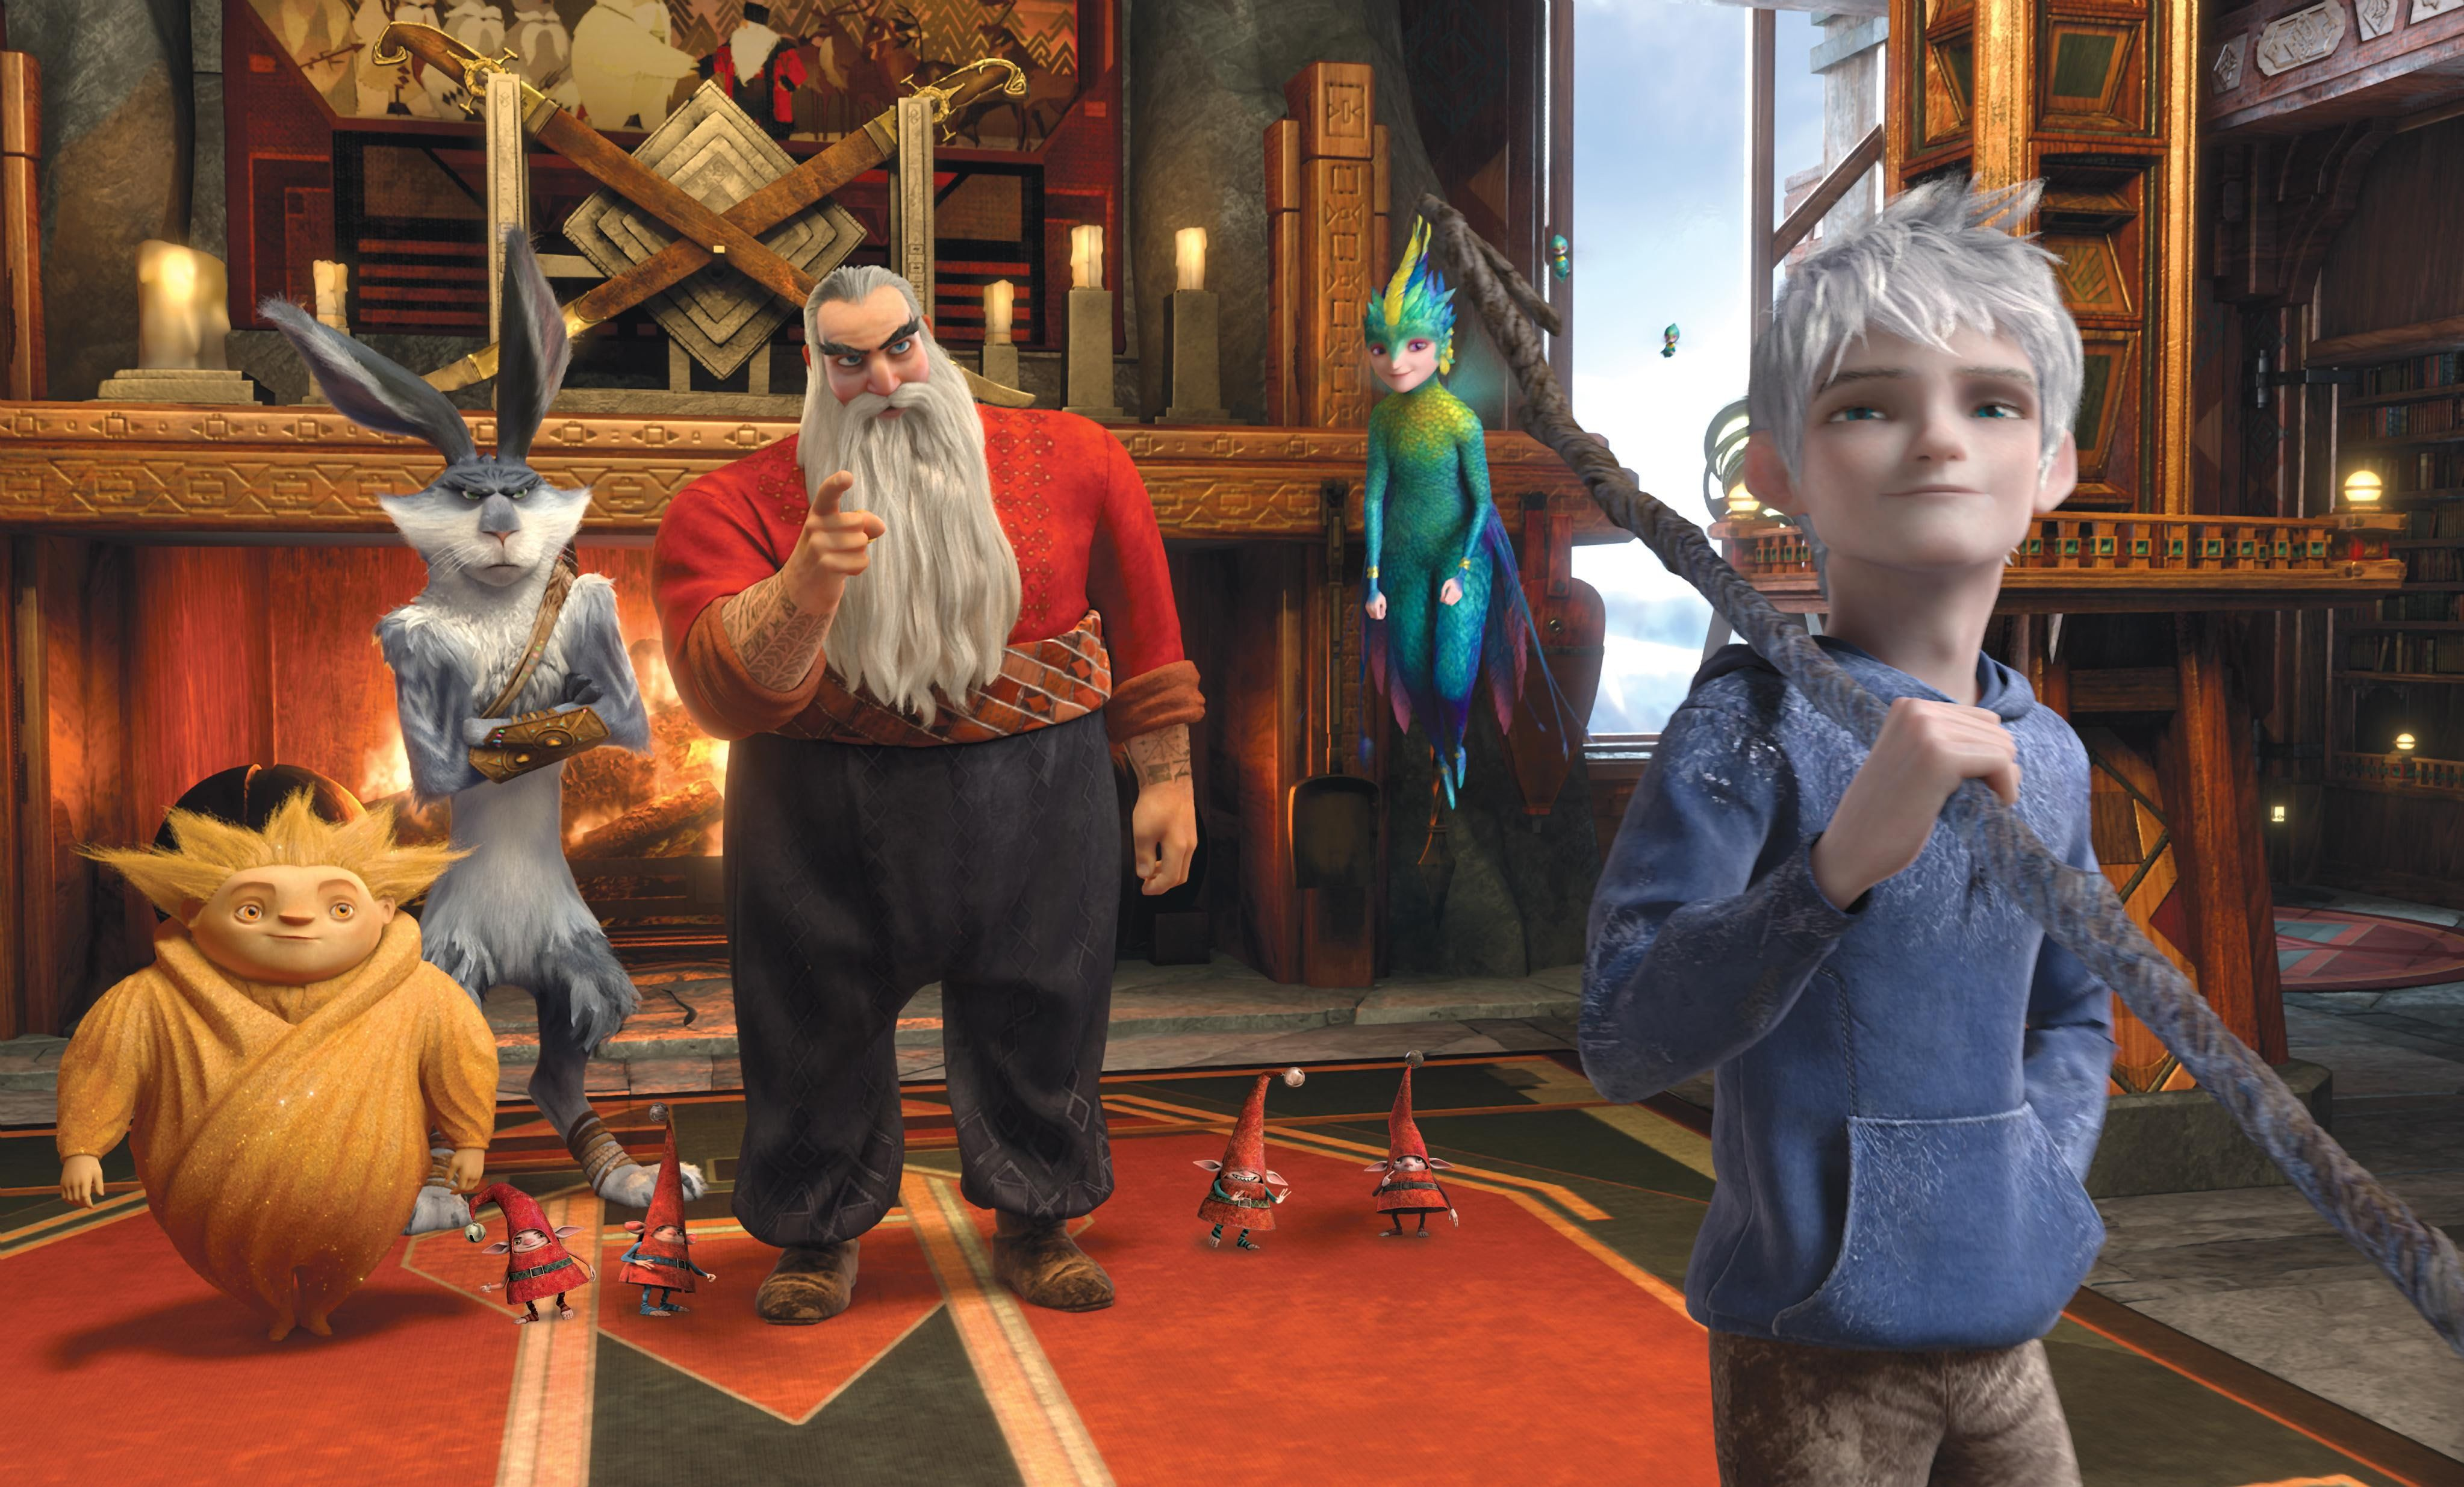 Santa Claus Rise Of The Guardians Ice Jack Tooth Fairy Sandman Fantasy Cartoon Easter Bunny San Rise Of The Guardians The Guardian Movie Guardian Review